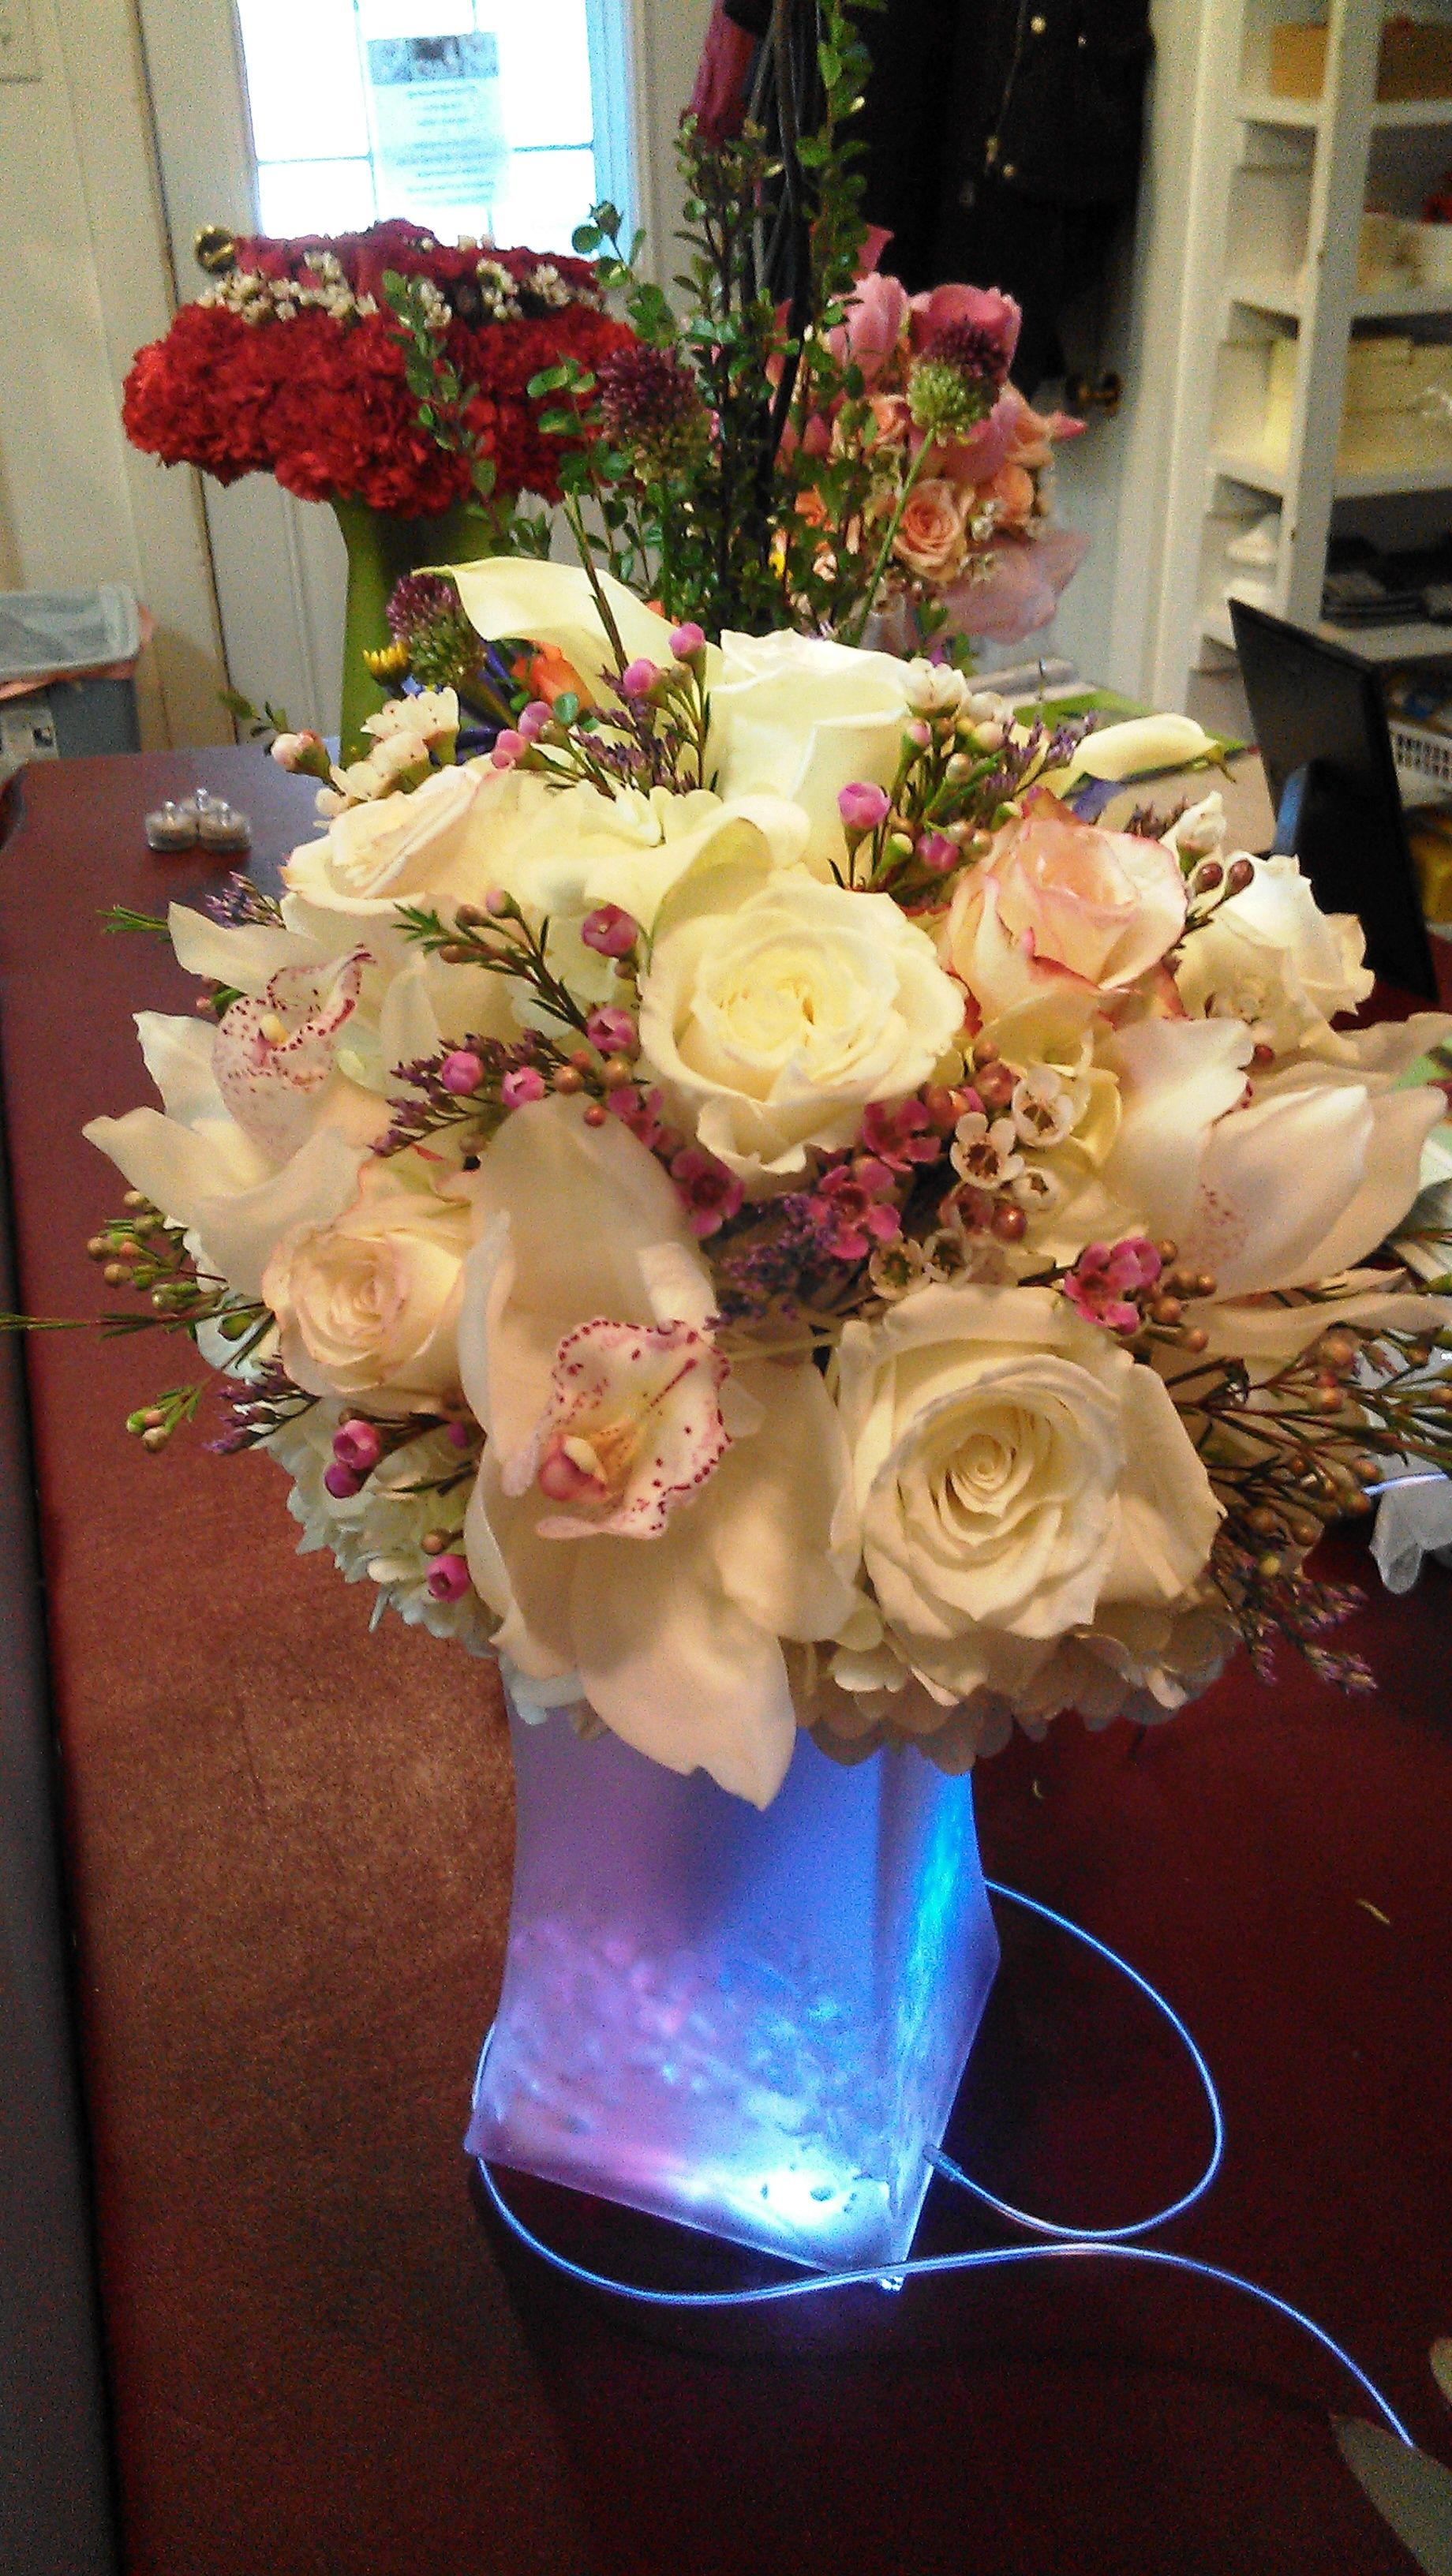 A bouquet of white roses, orchids, and pink waxflower. The bouquet is sitting in a frosted vase filled with California crystals and lit with multicolor submersibles.  See more wedding bouquets, centerpieces, and more at www.jeffmartinsweddings.com